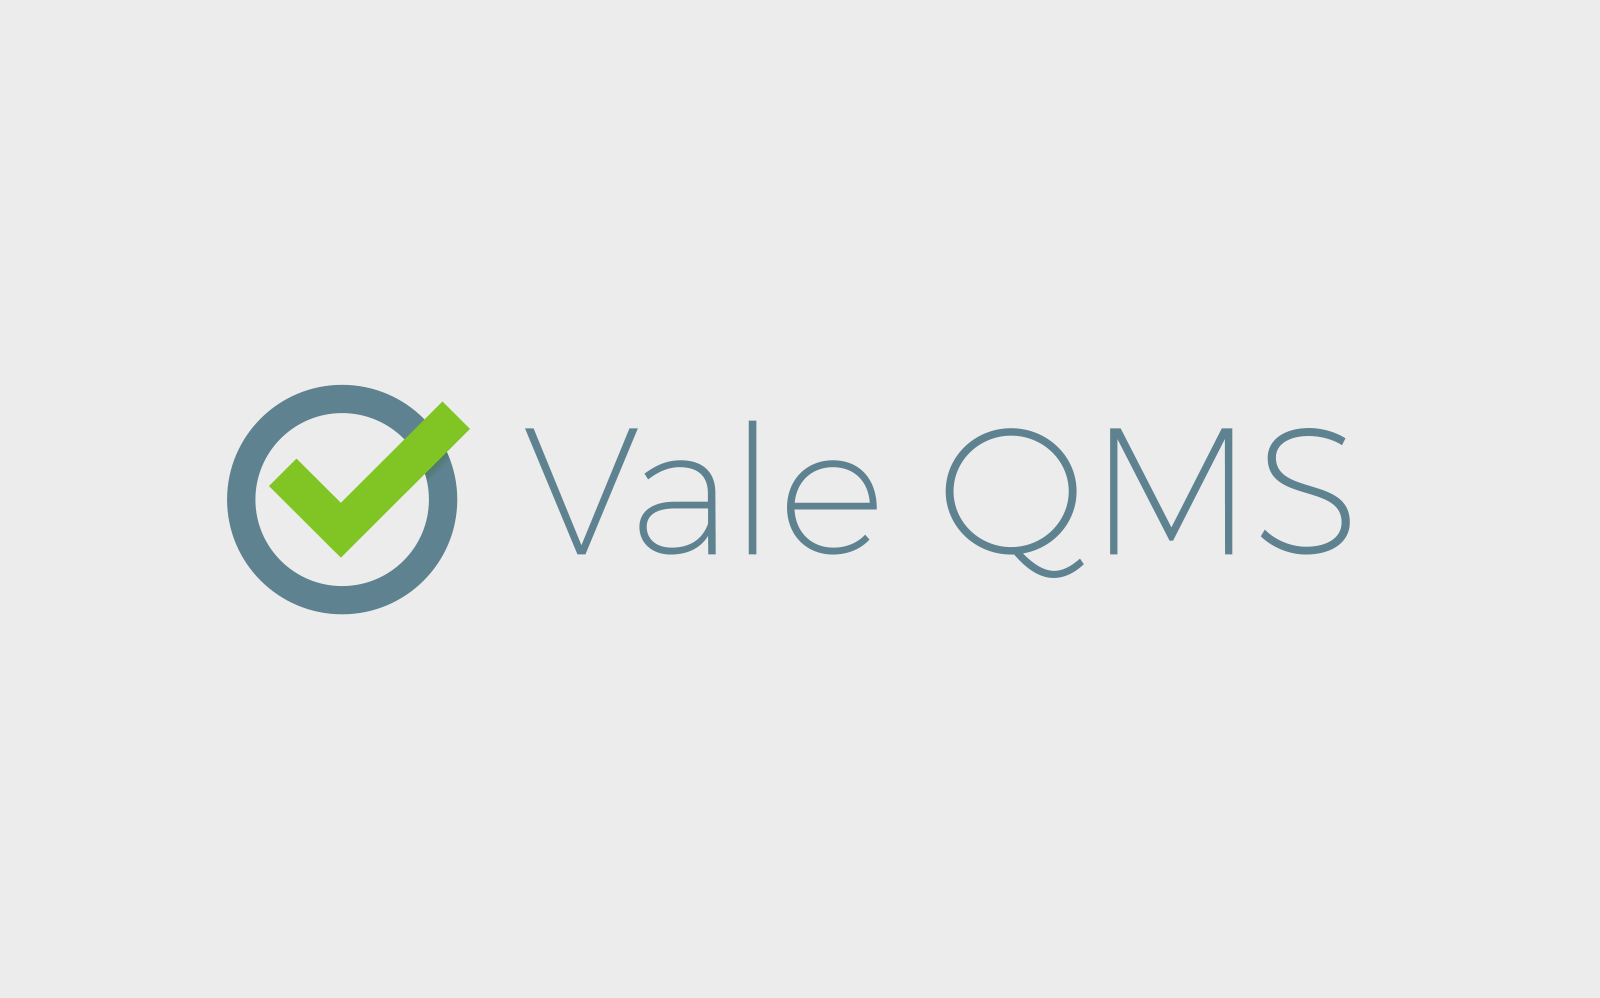 Vale QMS small business logo design